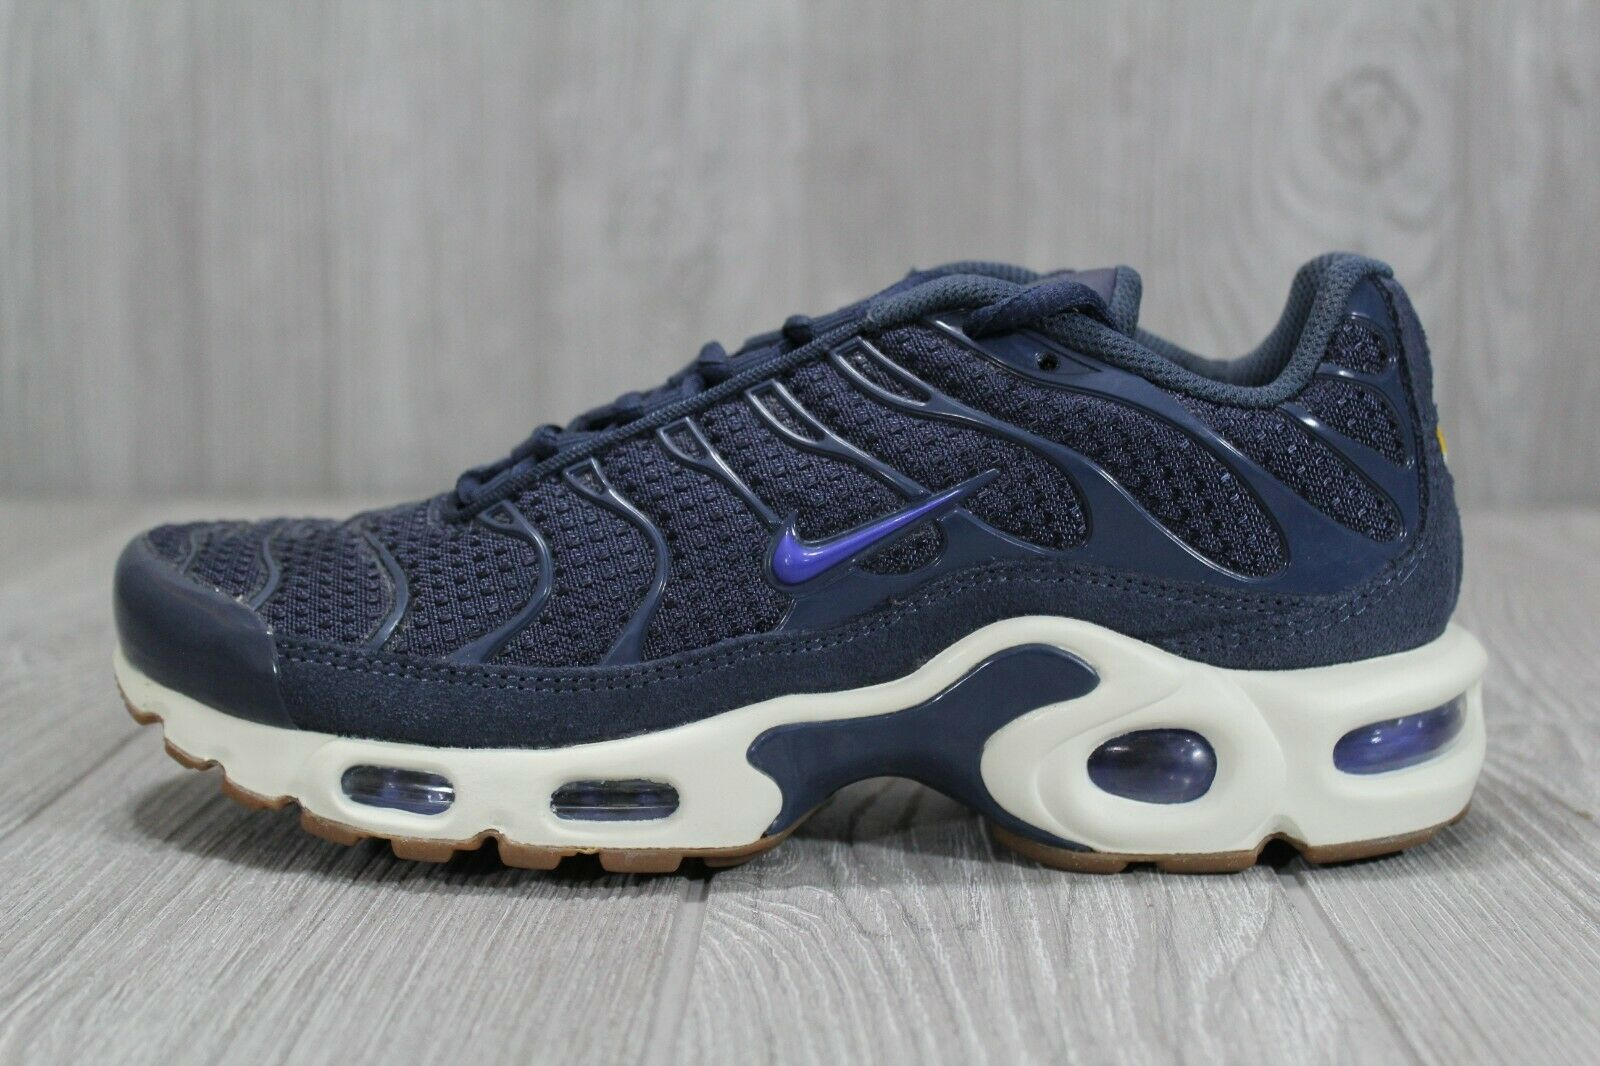 39 RARE Sample Nike Air Max Plus TN Women's Running shoes Sz 6.5, 9 605112 406